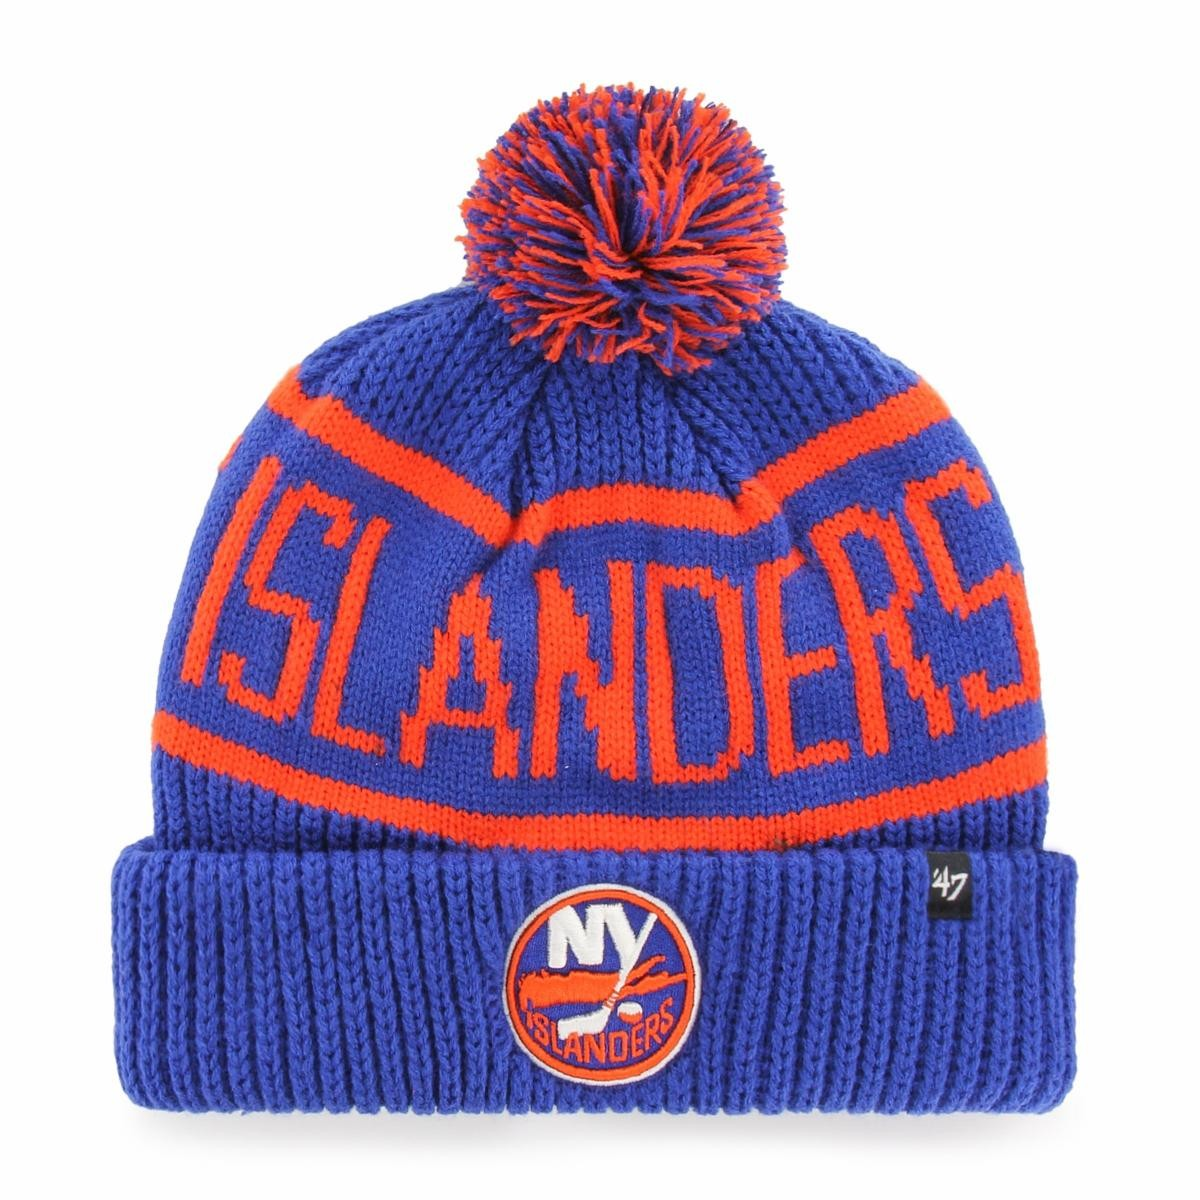 BRAND 47 New York Islanders Calgary Cuff Knit Winter Hat